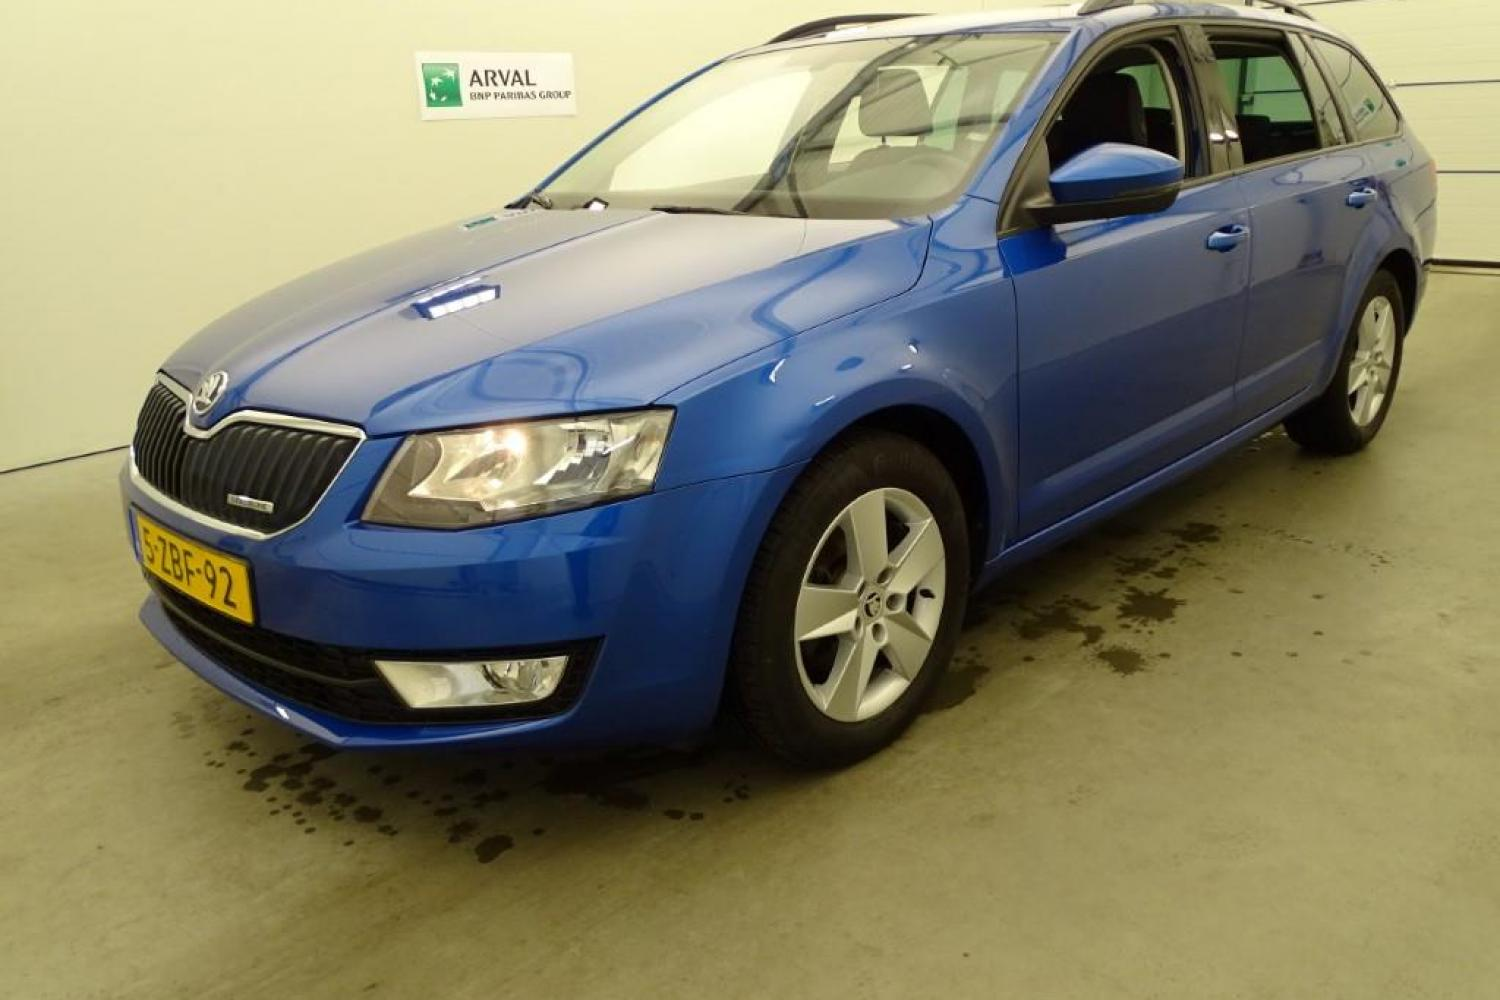 Skoda Oct.Combi 1.6TDI 110 Greenl.BL